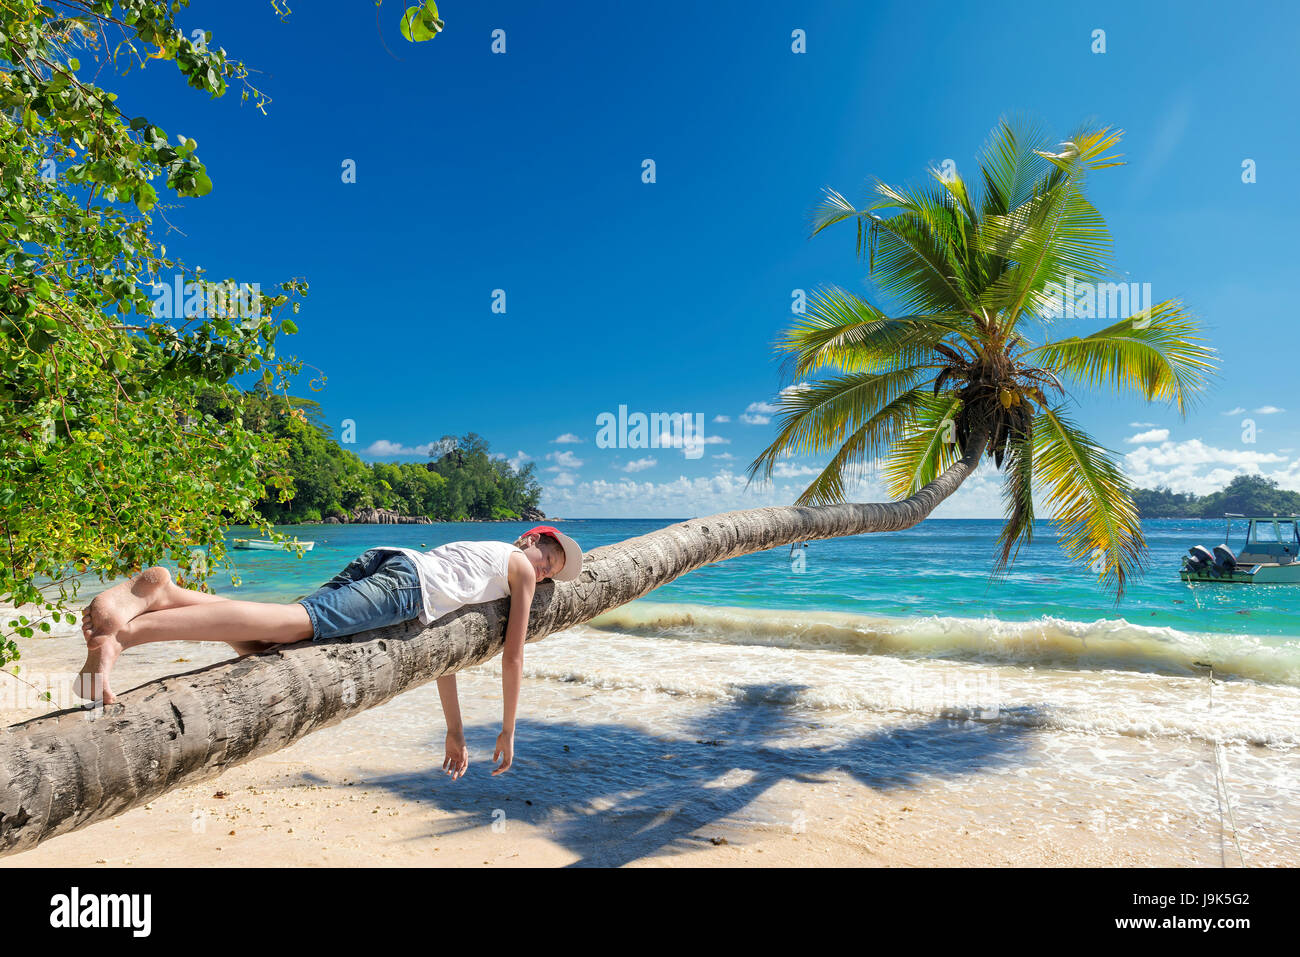 Cute boy resting lying on a palm tree at tropical island on vacationю - Stock Image